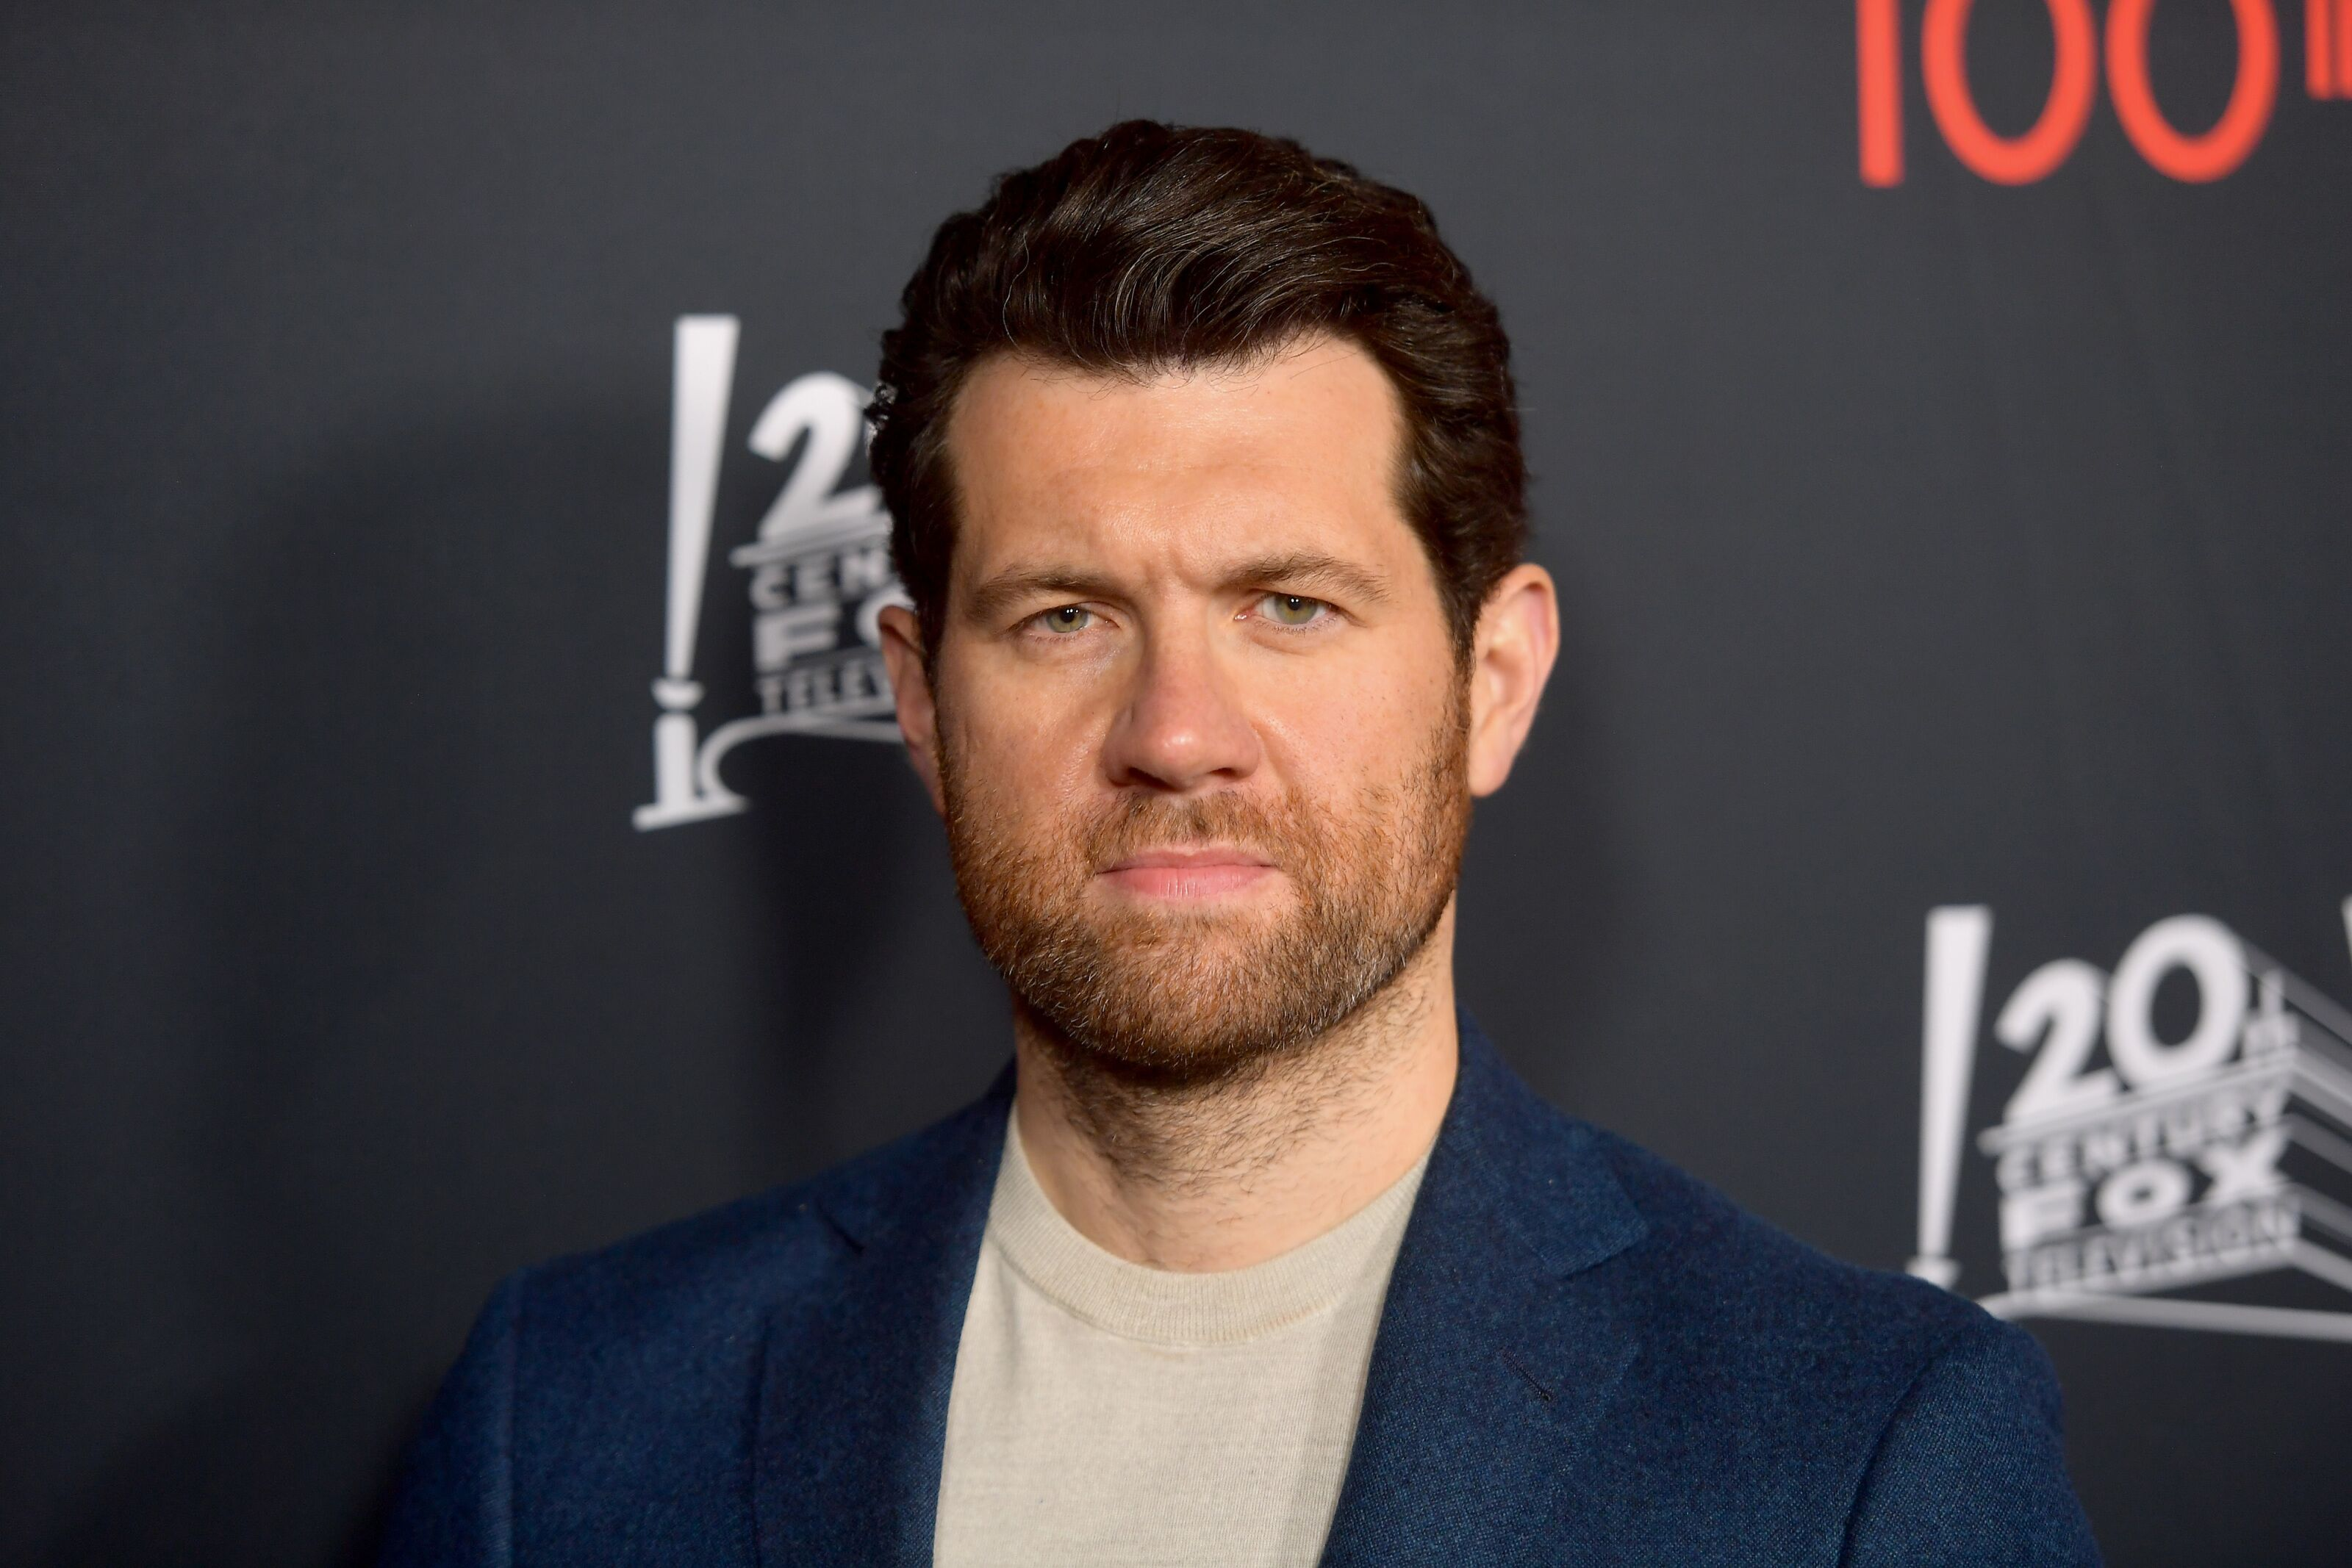 Impeachment: American Crime Story casts Billy Eichner and Betty Gilpin